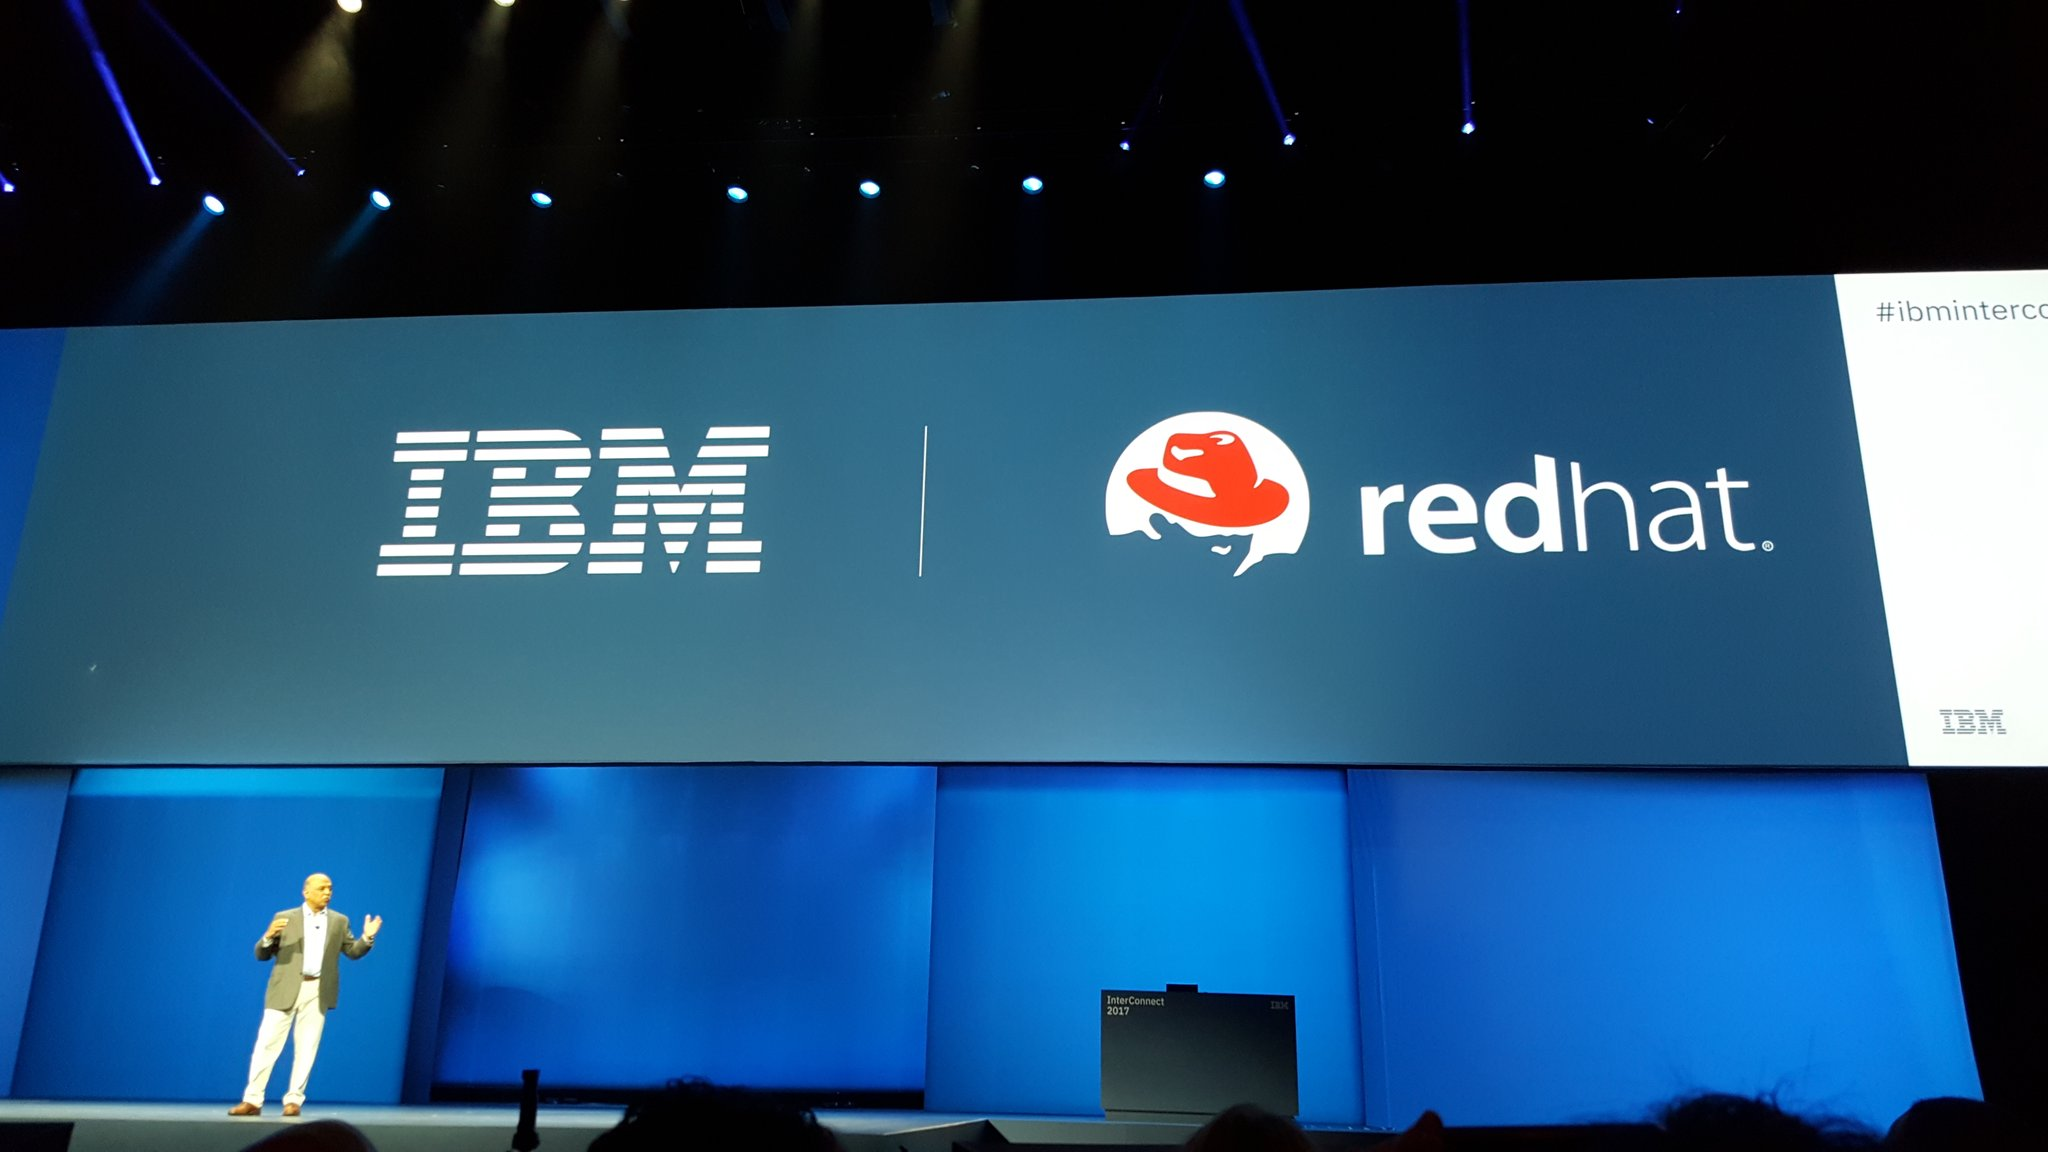 Ibm Interconnect Red Hat Cold Storage Et Cloud En Chine